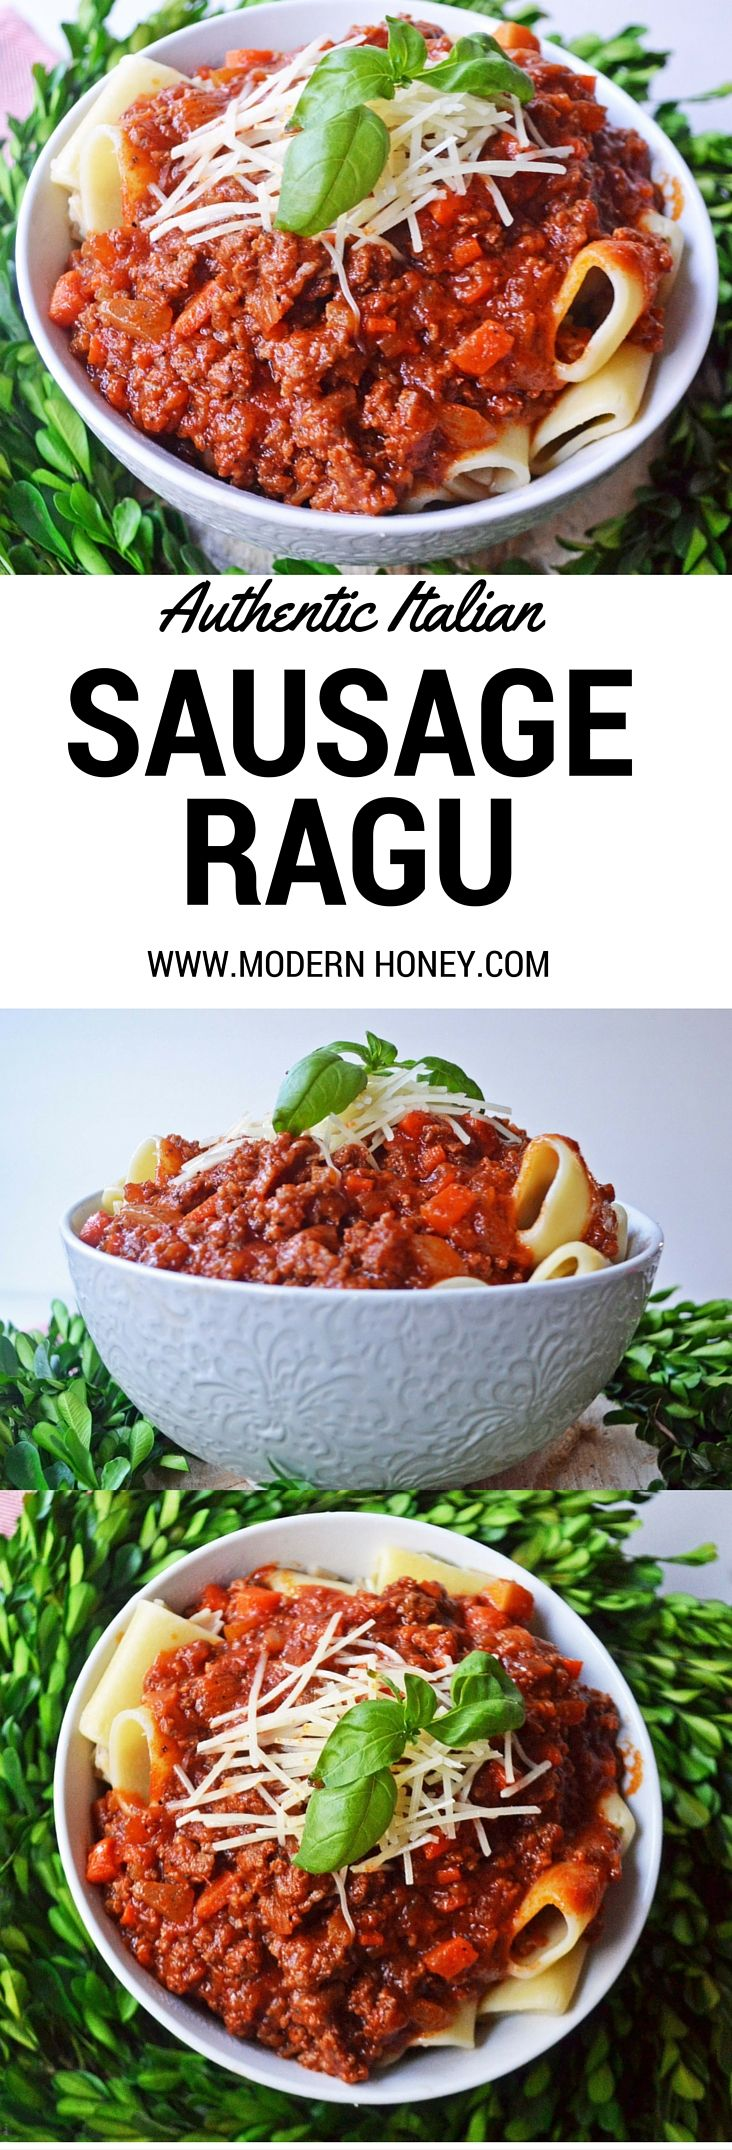 Authentic Italian Sausage Ragu by Modern Honey. This sauce is slowly simmered to perfection.